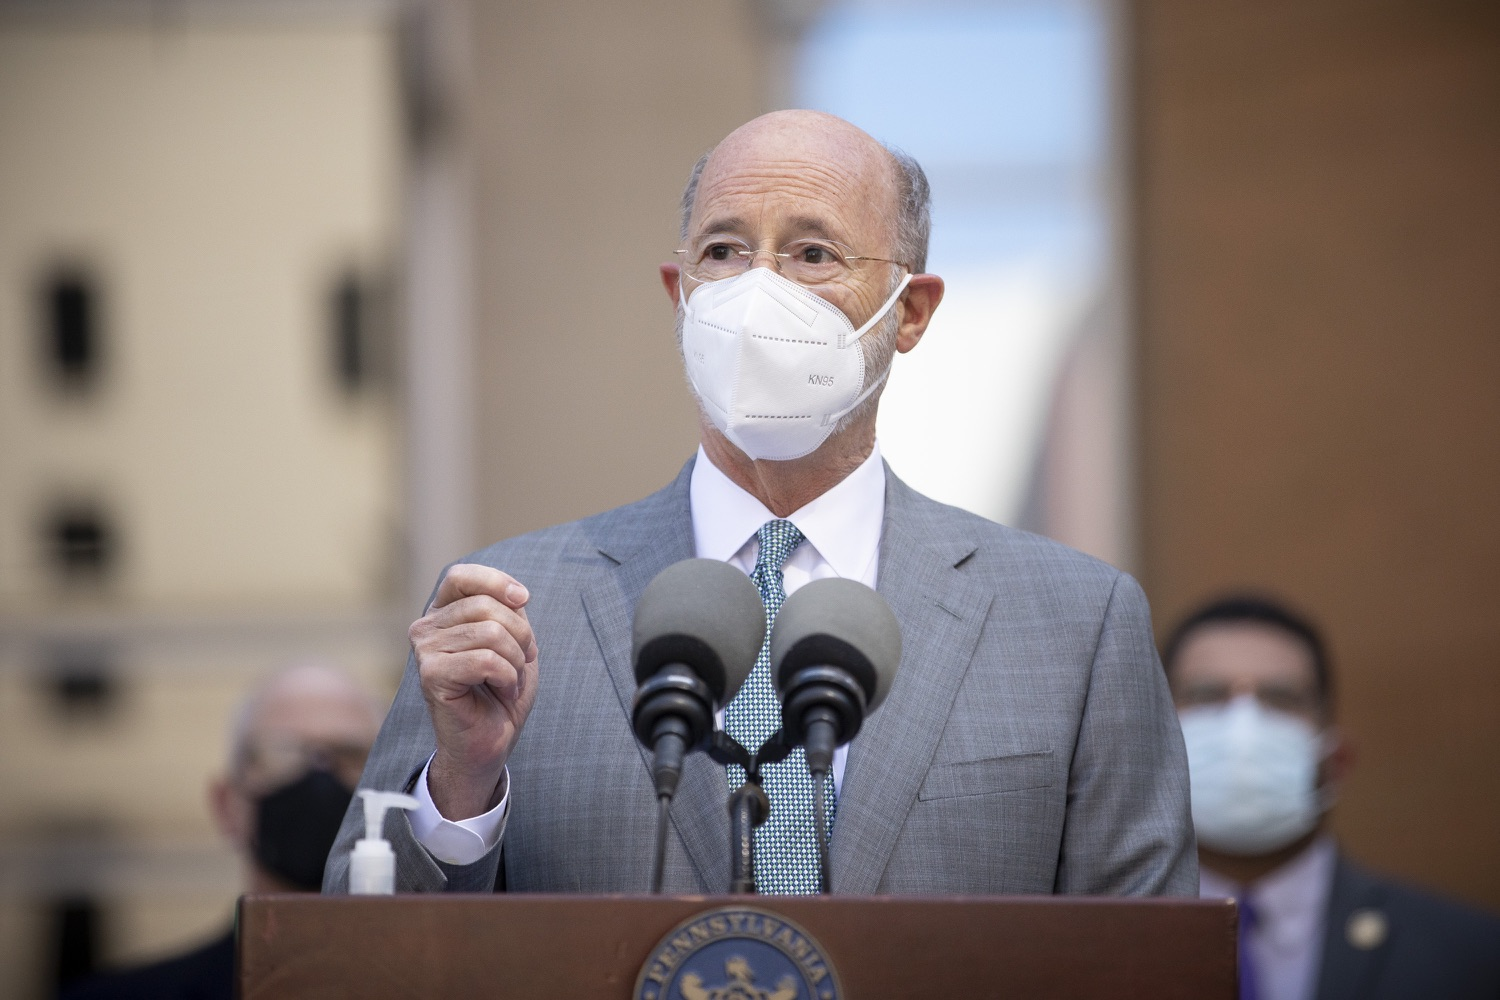 """<a href=""""https://filesource.wostreaming.net/commonwealthofpa/photo/18688_gov_vaccines_dz_004.jpg"""" target=""""_blank"""">⇣Download Photo<br></a>Pennsylvania Governor Tom Wolf speaking with the press.  As Pennsylvania continues its accelerated COVID-19 vaccination plan, Pennsylvanians who are not able to leave their homes must be reached, and various state agencies and community groups are helping. Governor Tom Wolf visited Reading to talk about how the state and its partners are using various means to reach people not able to leave home to be vaccinated against COVID-19.  APRIL 26, 2021 - READING, PA"""